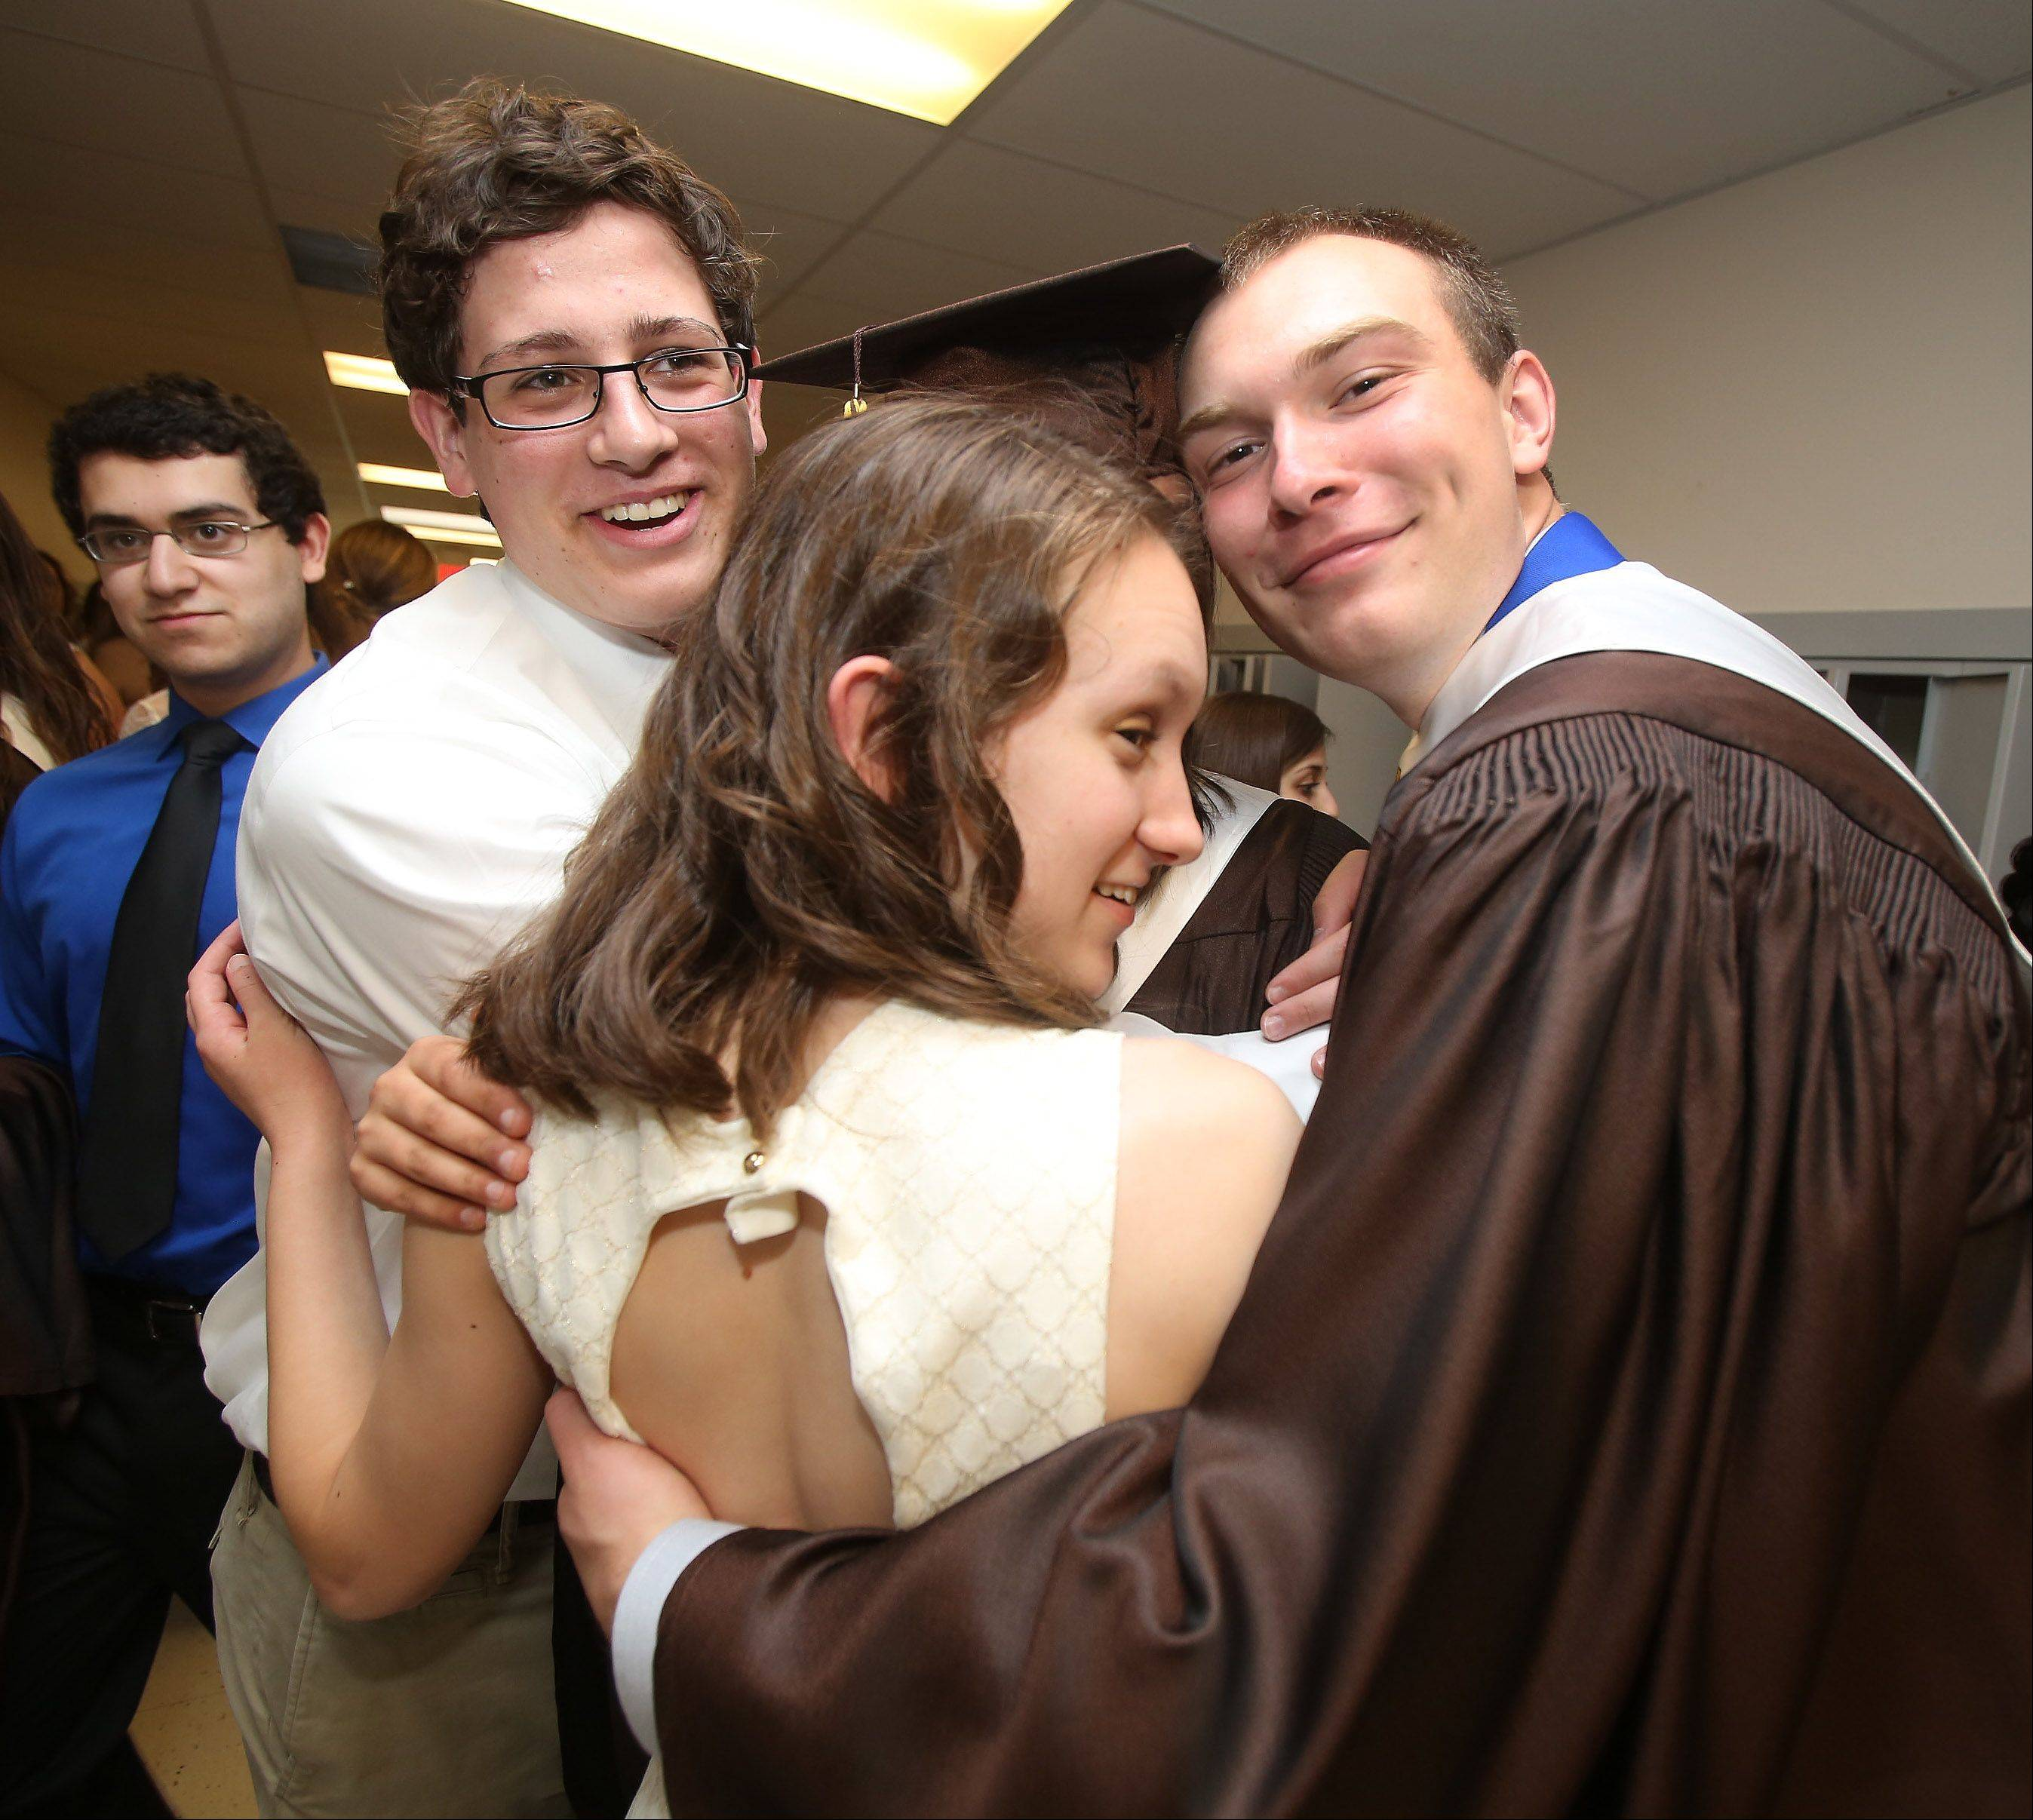 Dominic Fusco, left, Natalie Geoffroy, and Raymond Godlewski have a group hug before the commencement.